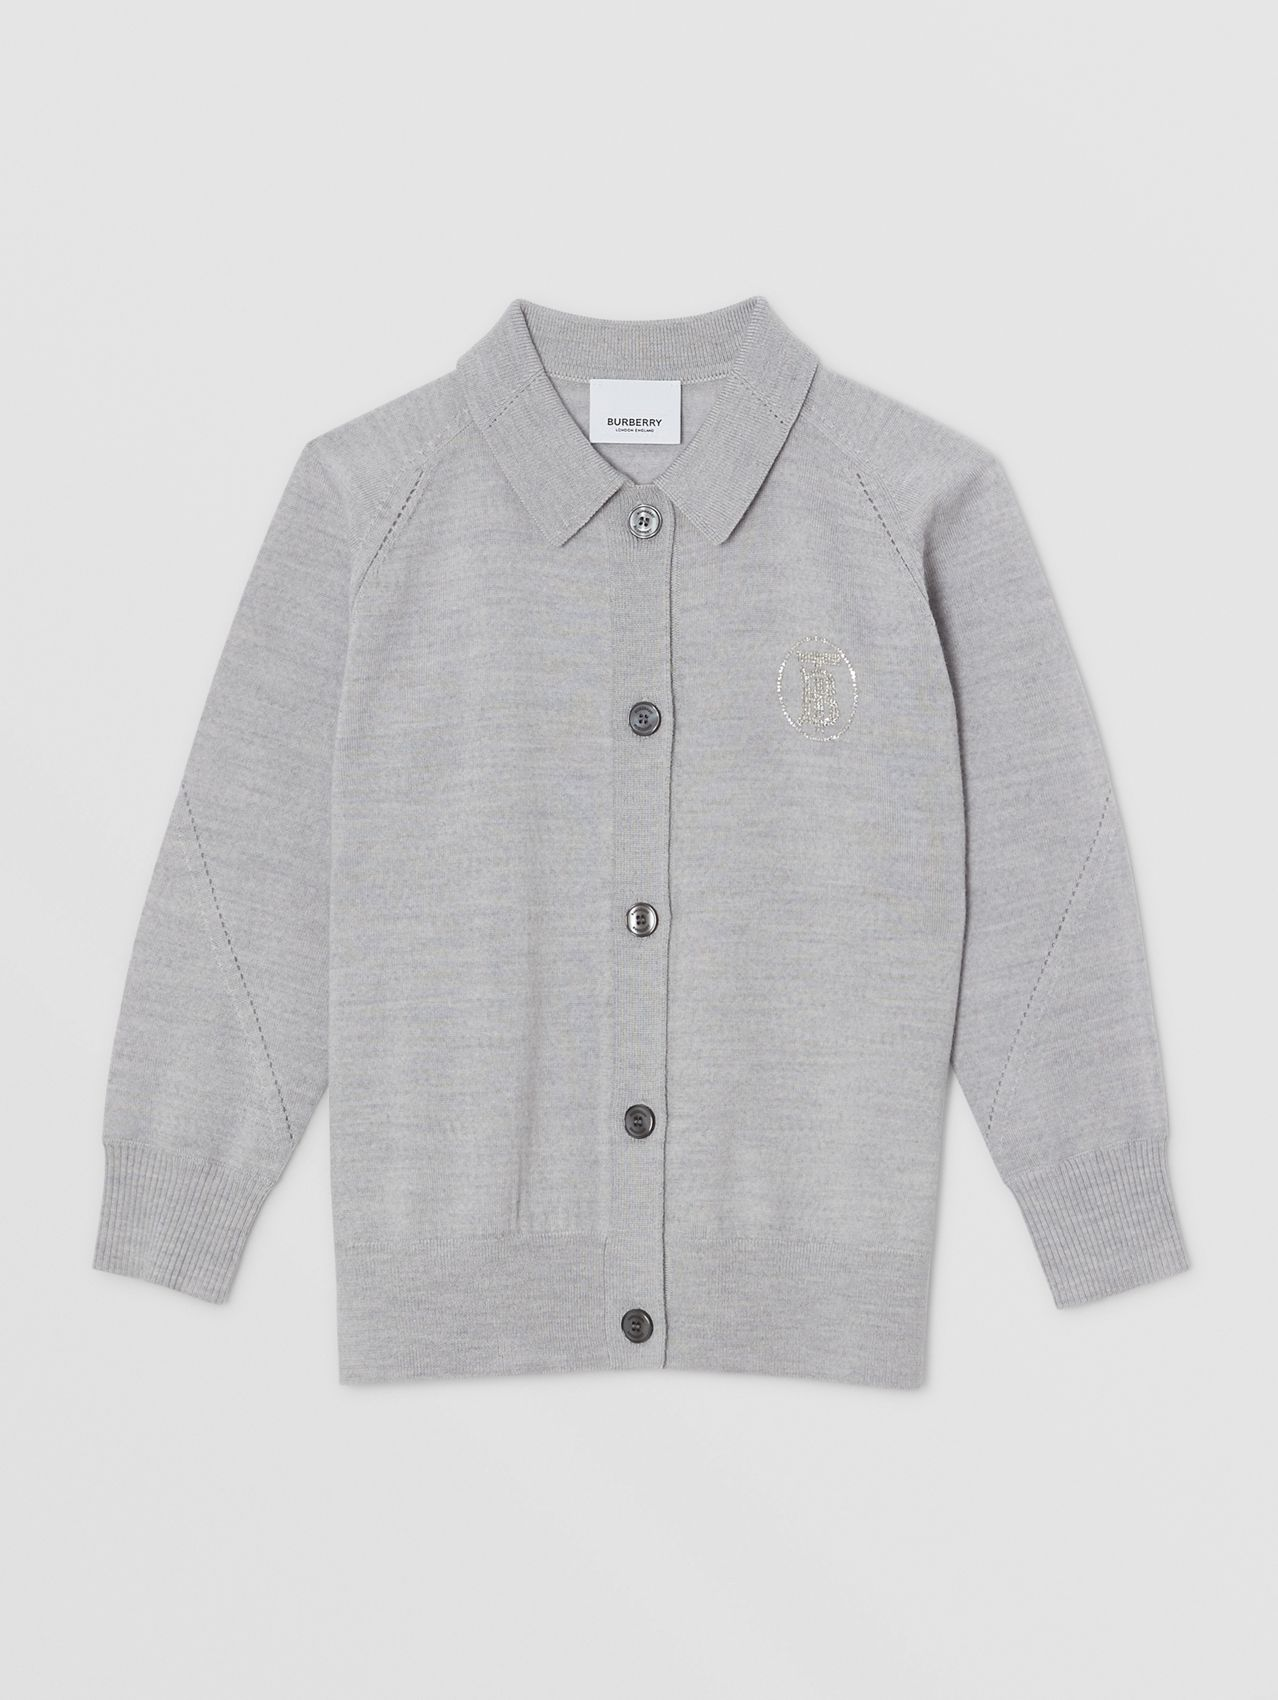 Crystal Monogram Motif Merino Wool Cardigan in Light Grey Melange